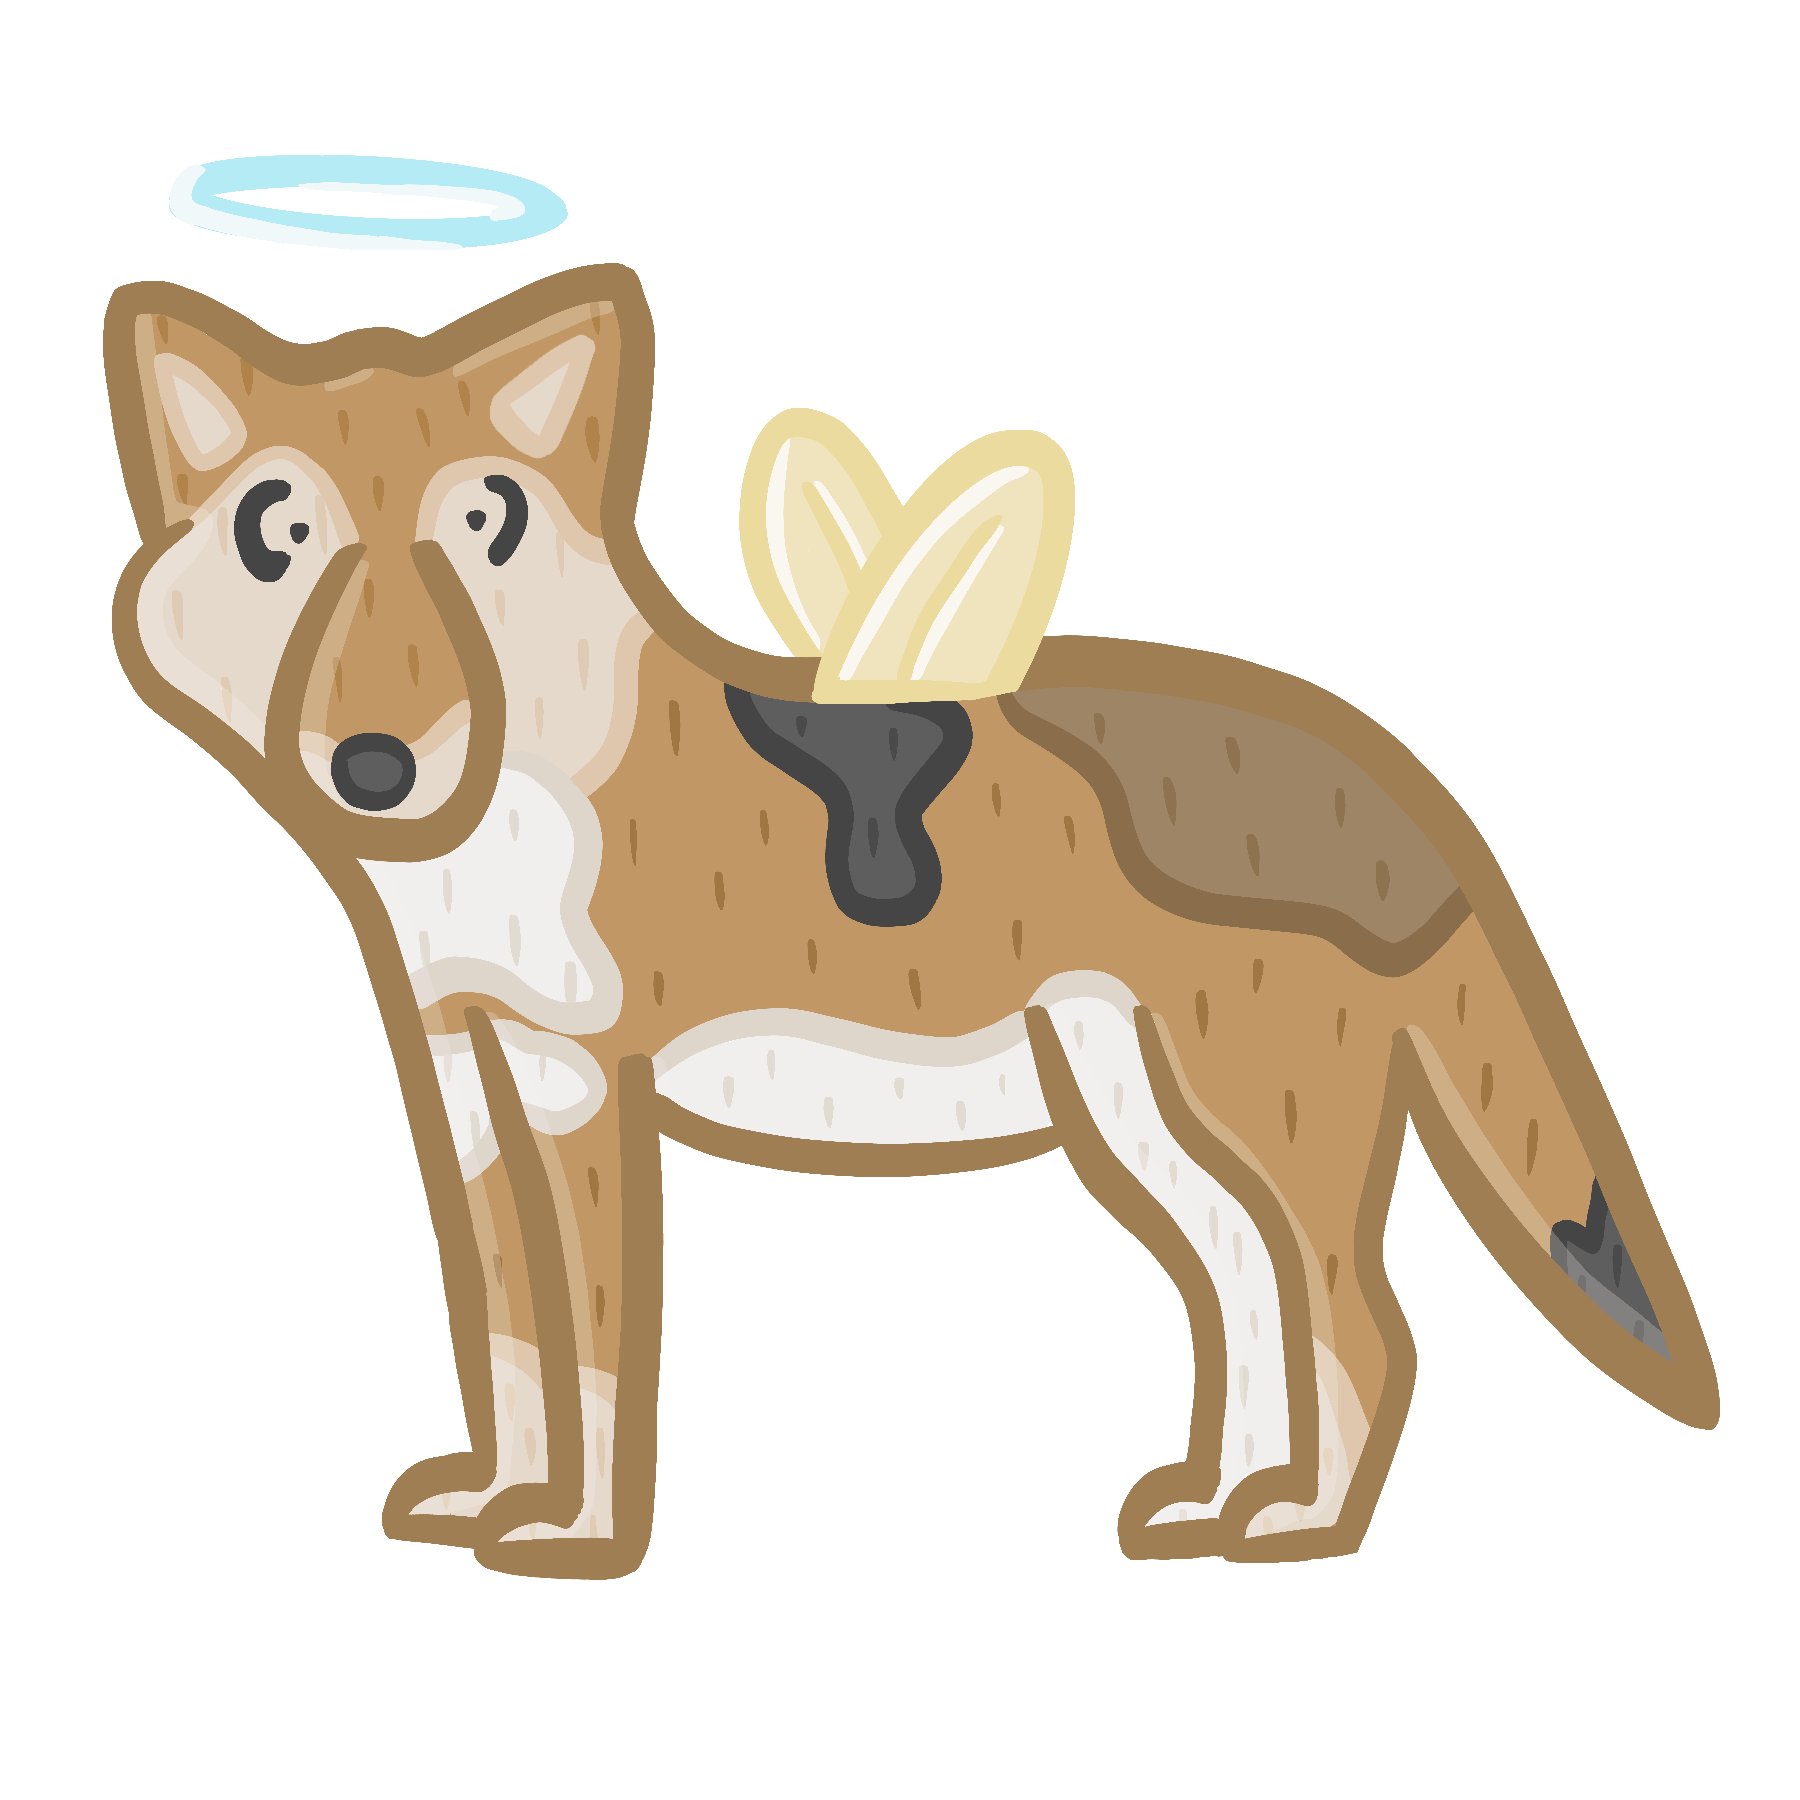 Image of a coyote with wings and a halo. On click it disappears then reappears on a second click.